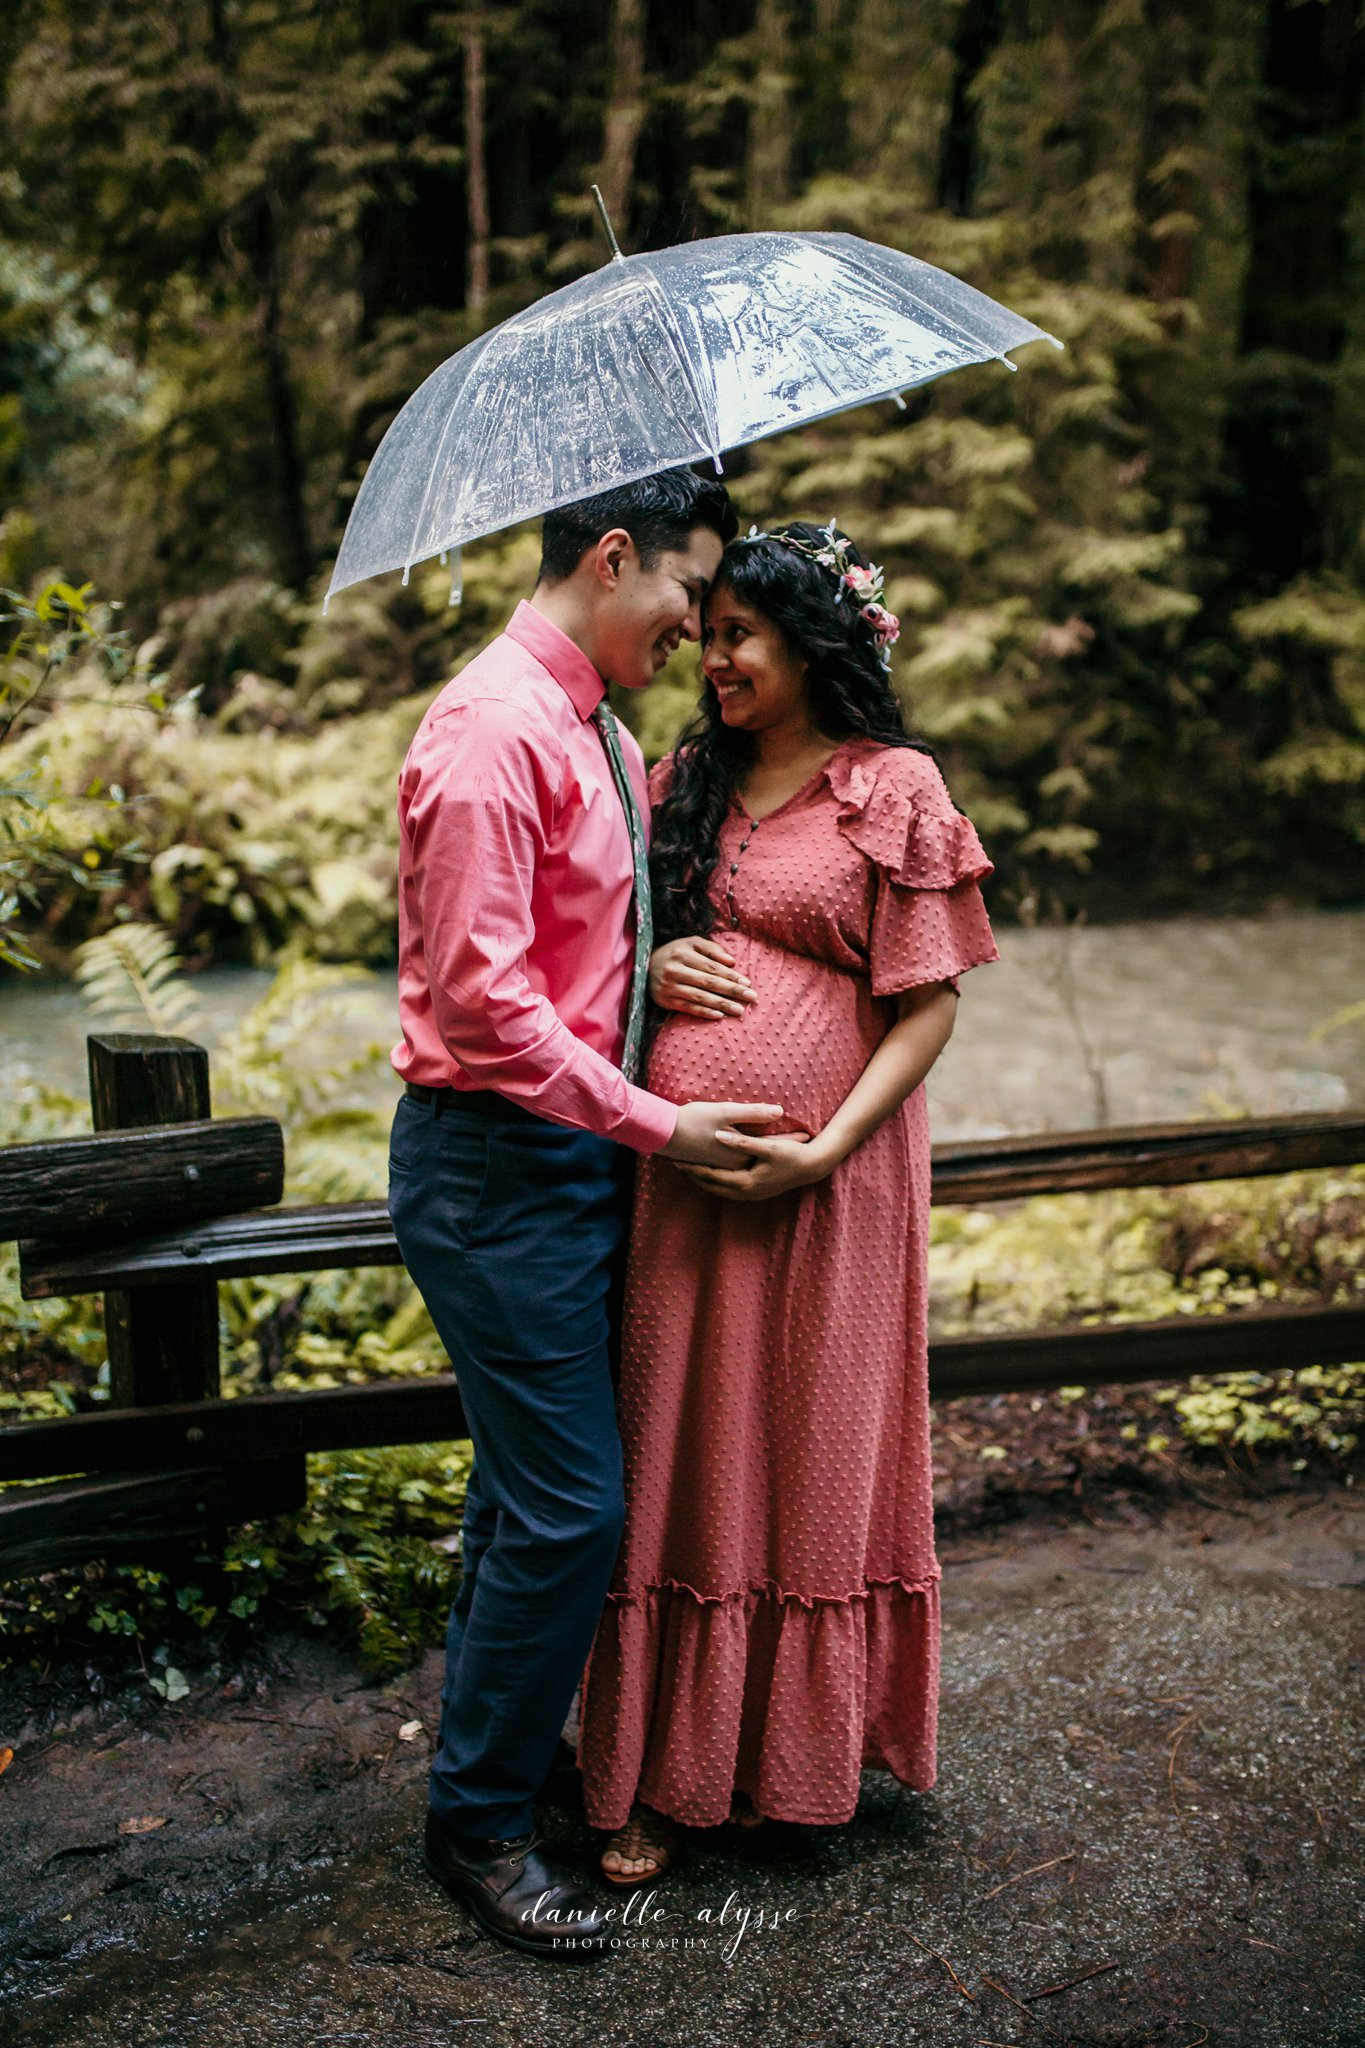 190216_maternity_india_family_muir_woods_bay_danielle_alysse_photography_3_WEB.jpg